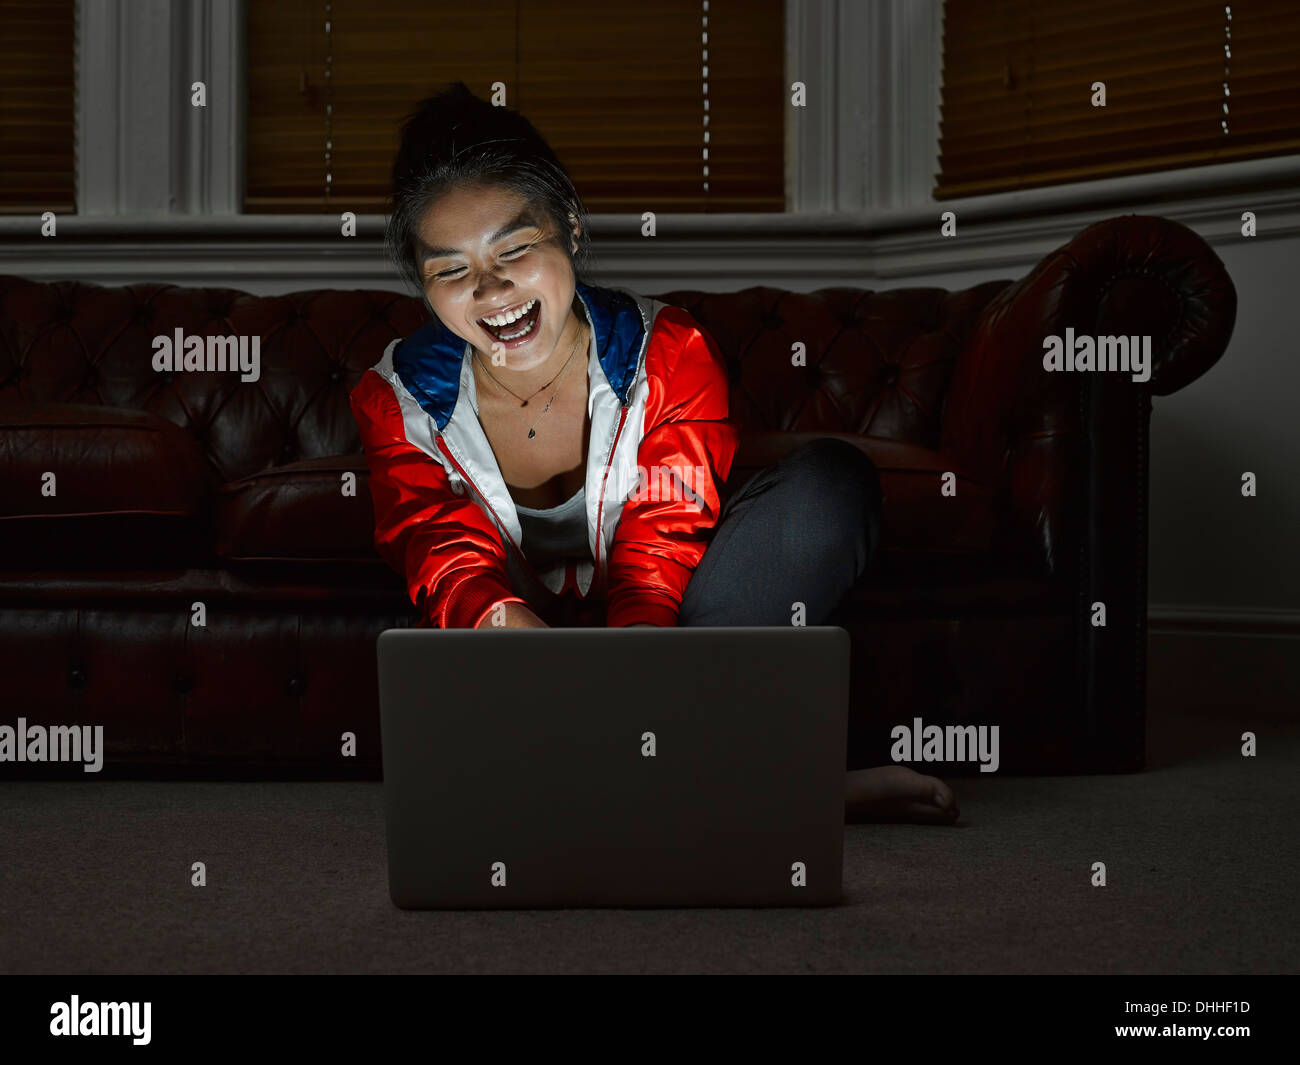 Young woman sitting on floor laughing at digital tablet Photo Stock